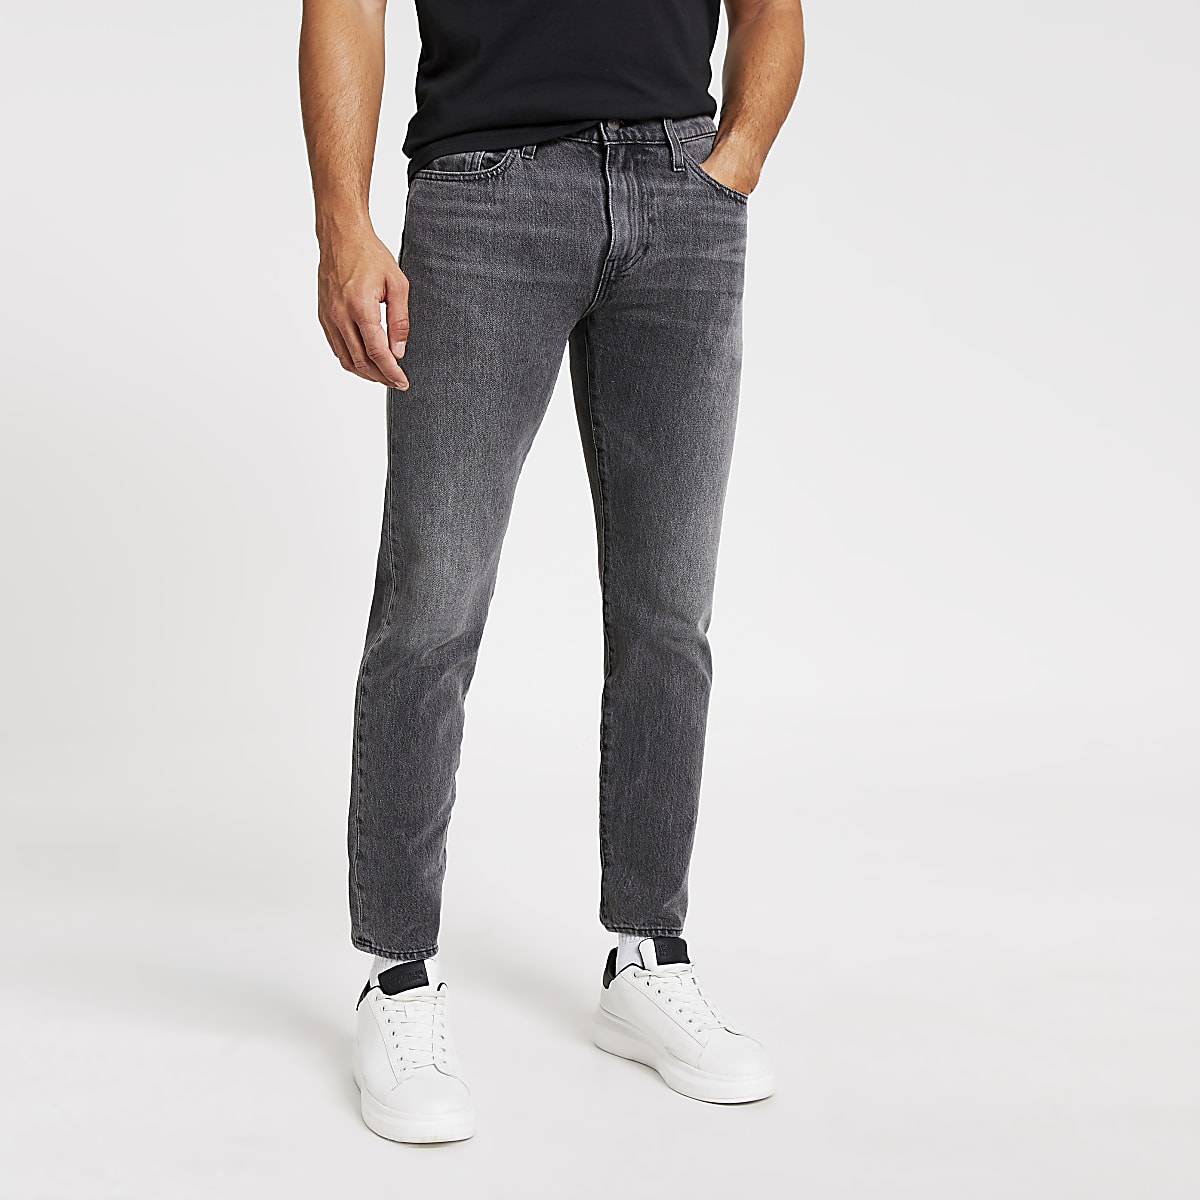 Levi's grey 512 slim tapered denim jeans